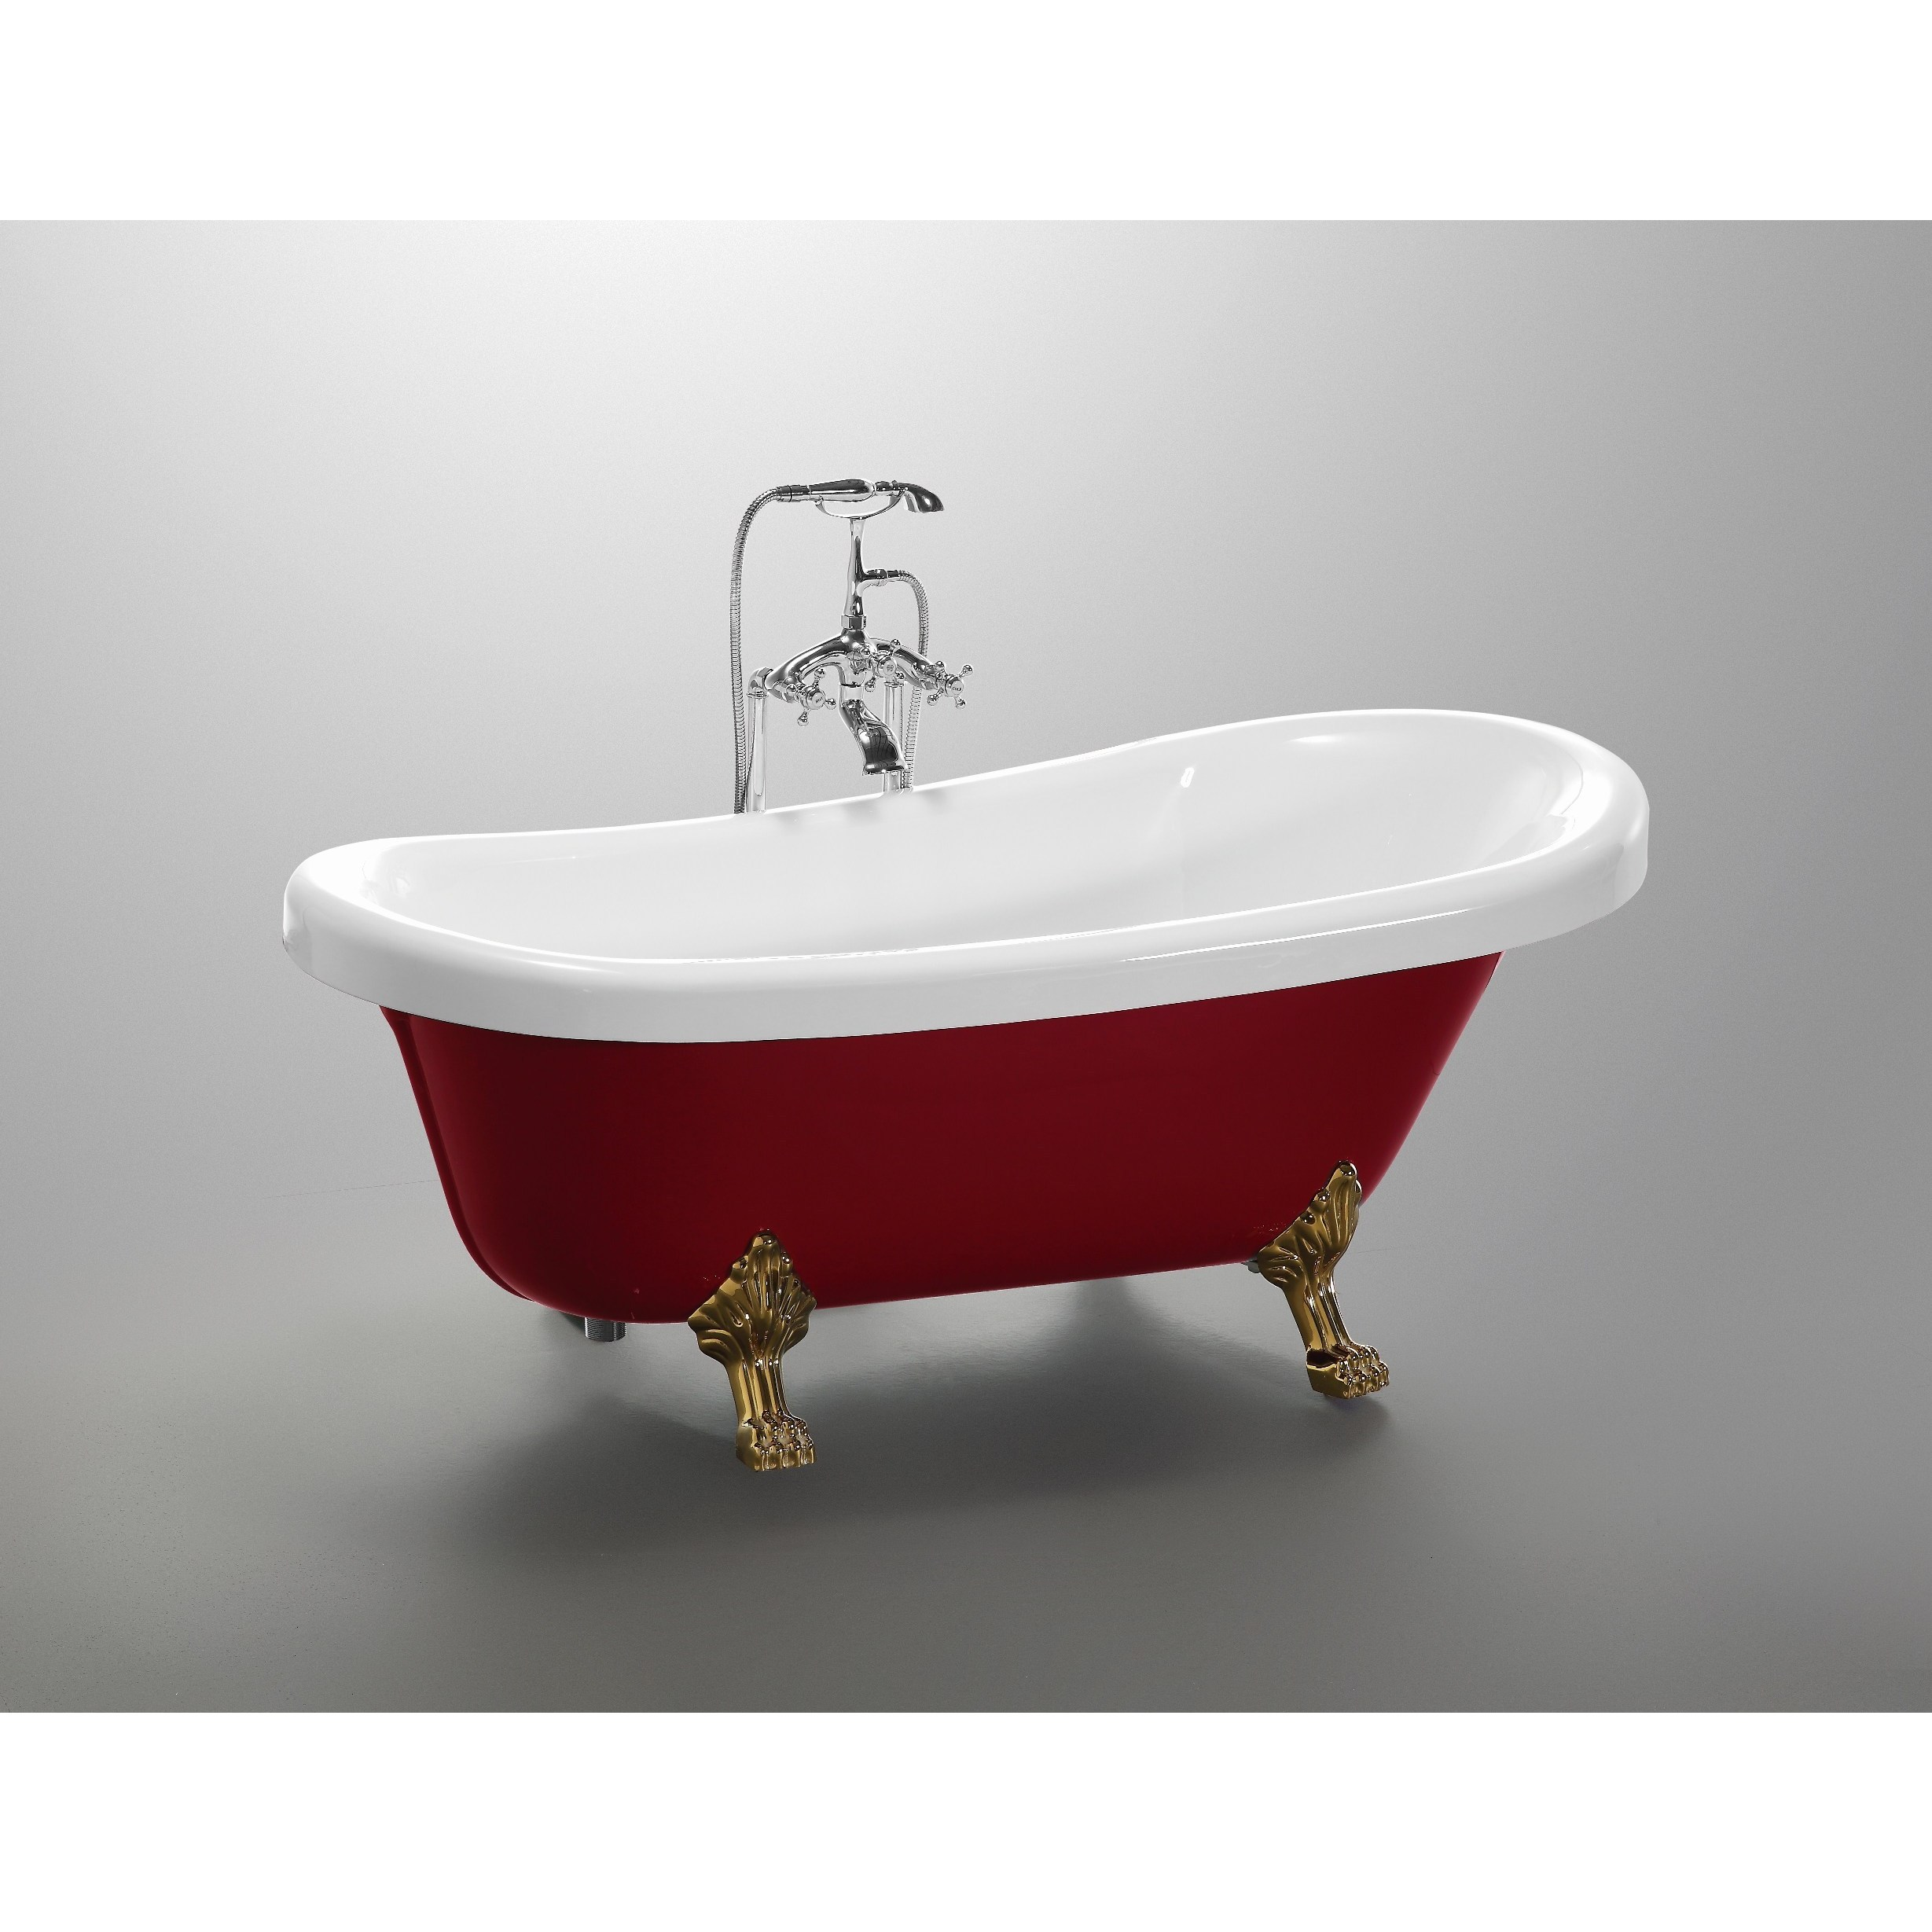 Shop Vanity Art Freestanding Red and White Acrylic 67-Inch Claw Foot ...